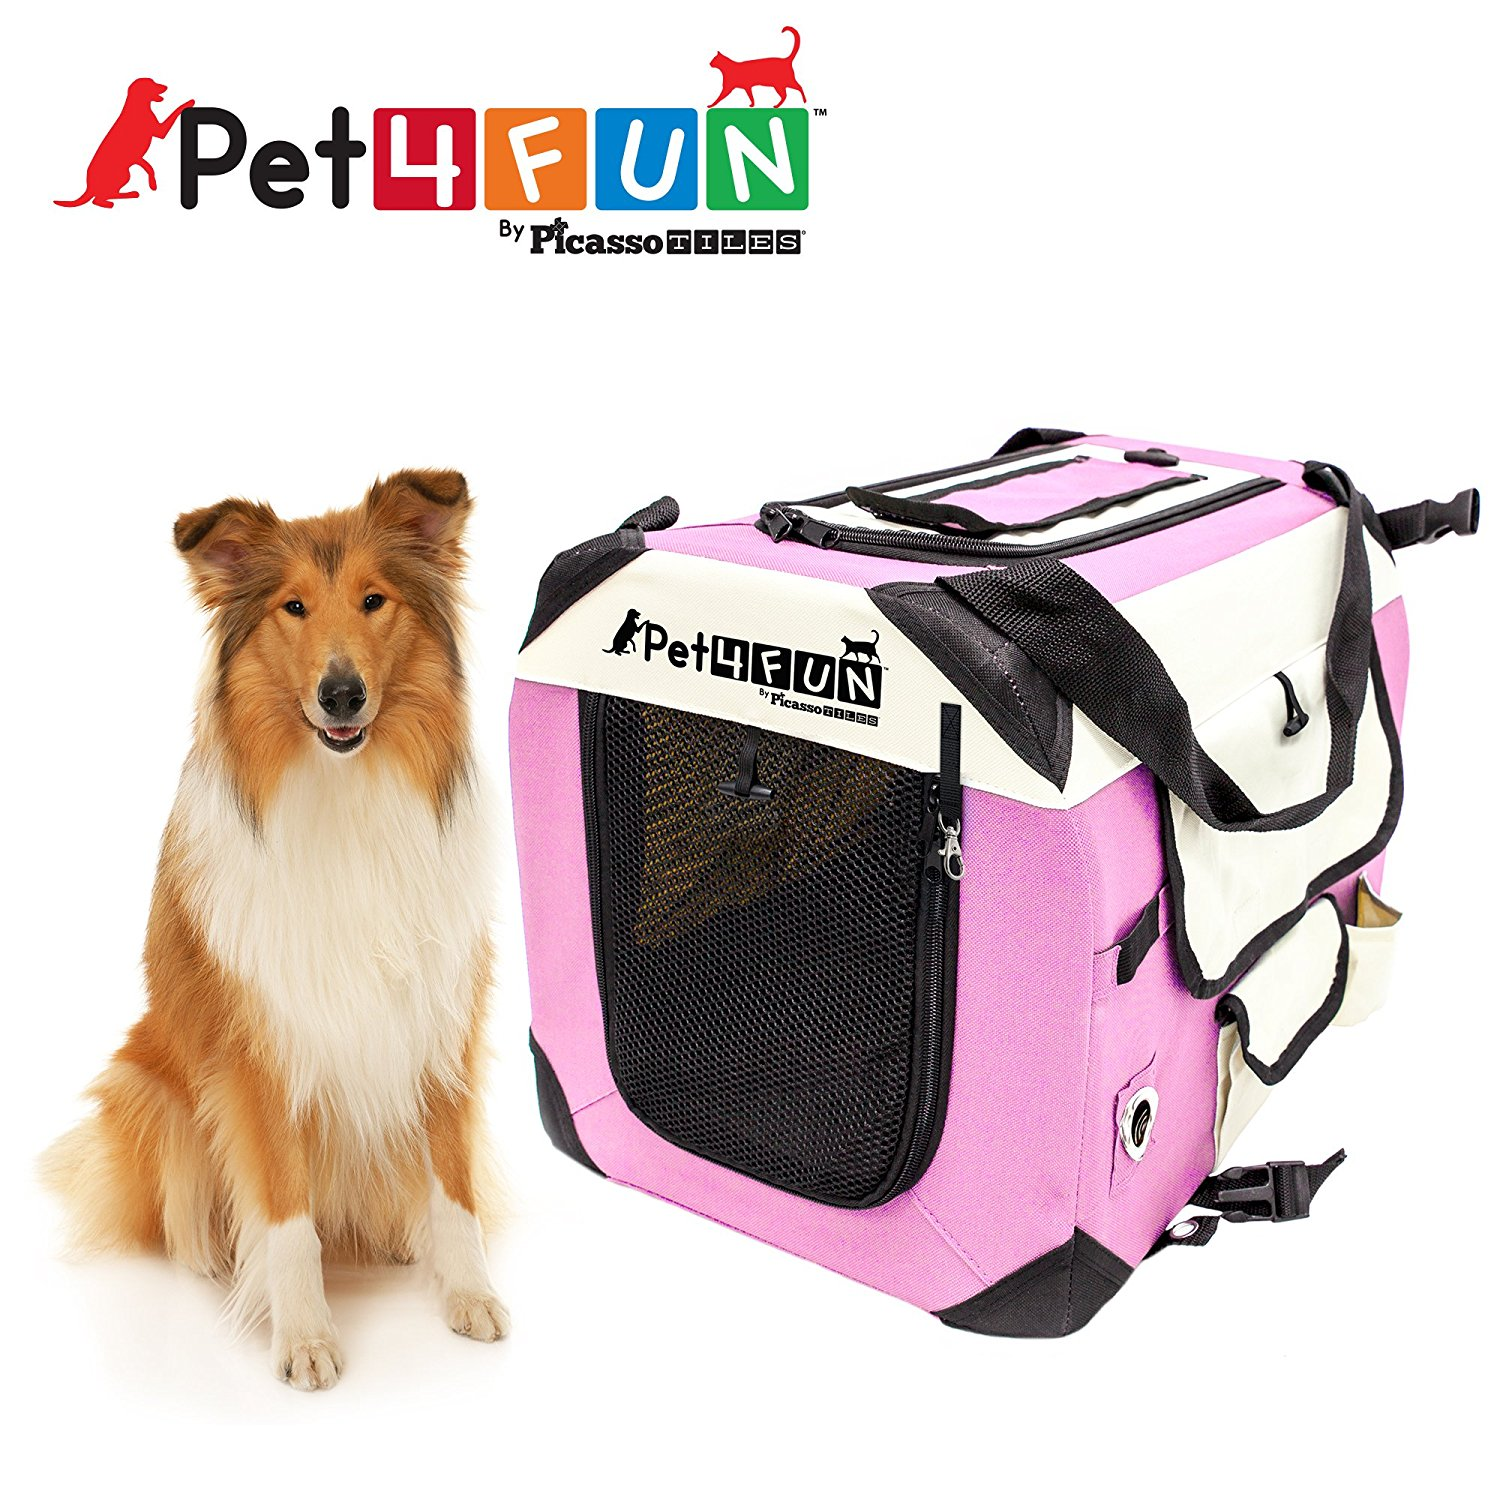 Pet4Fun PN952 Foldable Travel Crate Pet Carrier for Cat or Dog (Large) PINK